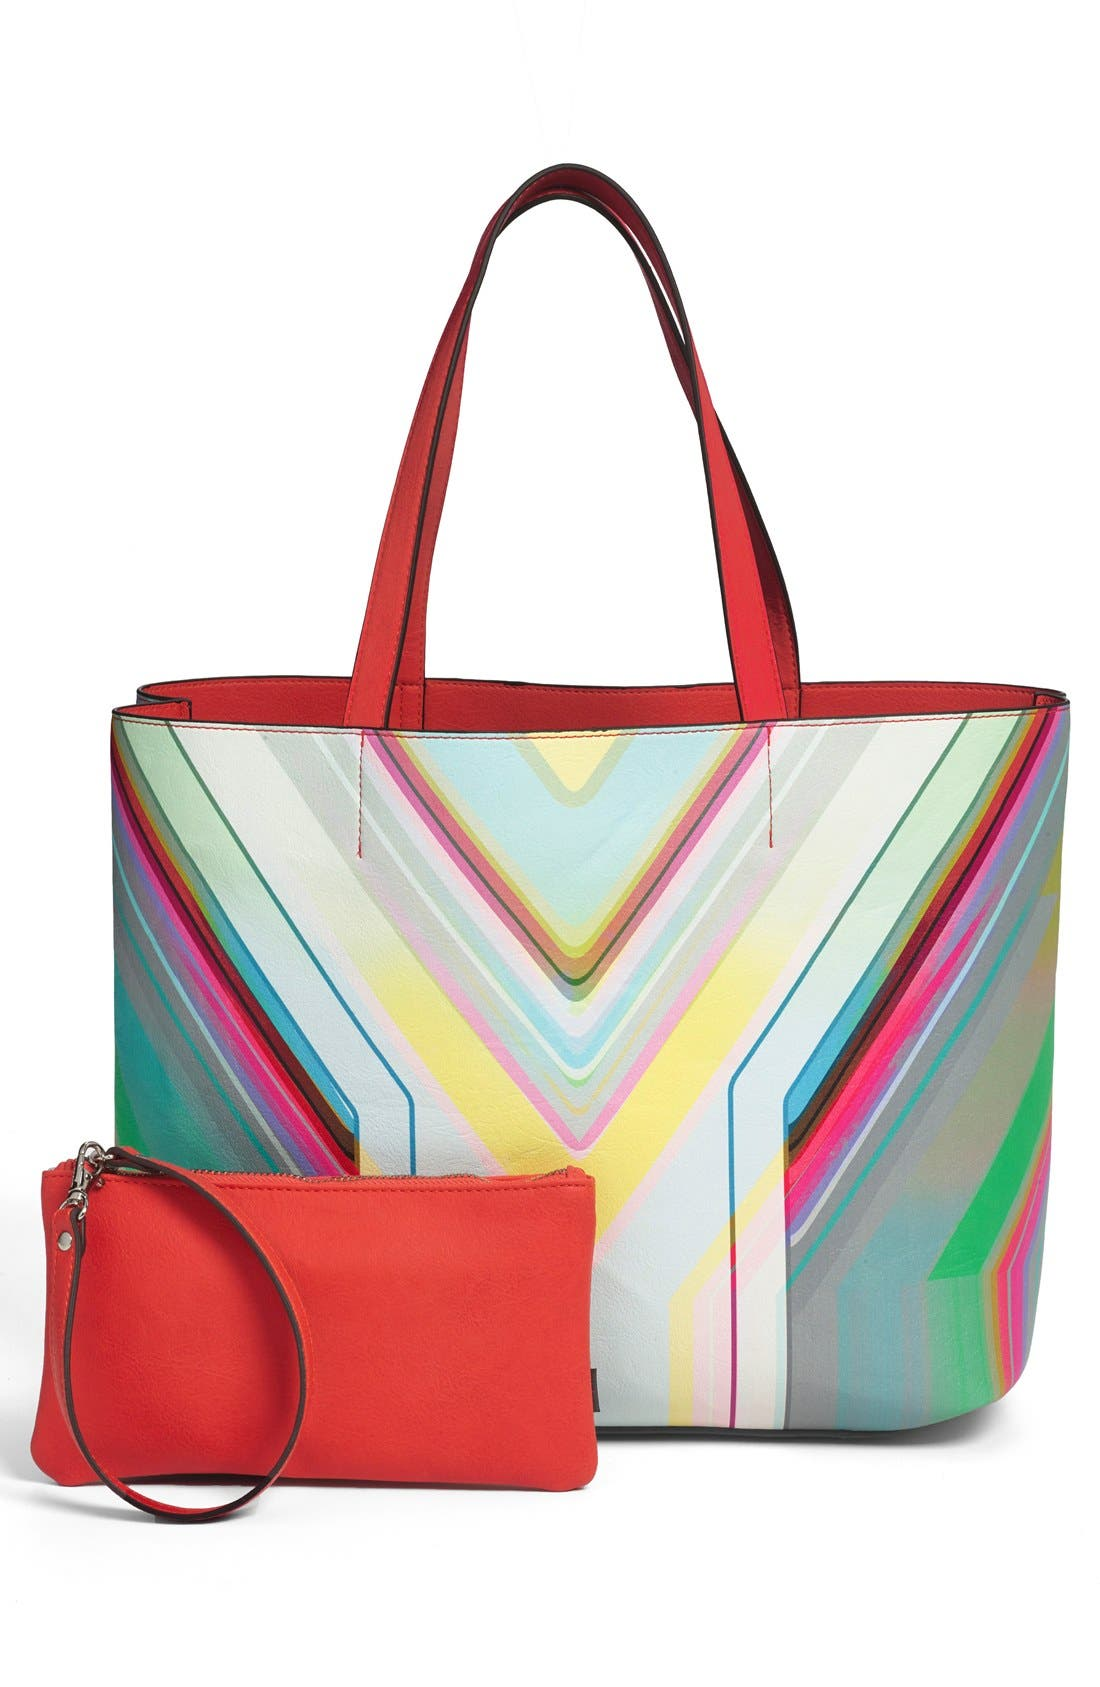 Alternate Image 1 Selected - Echo 'Essex' Reversible Tote